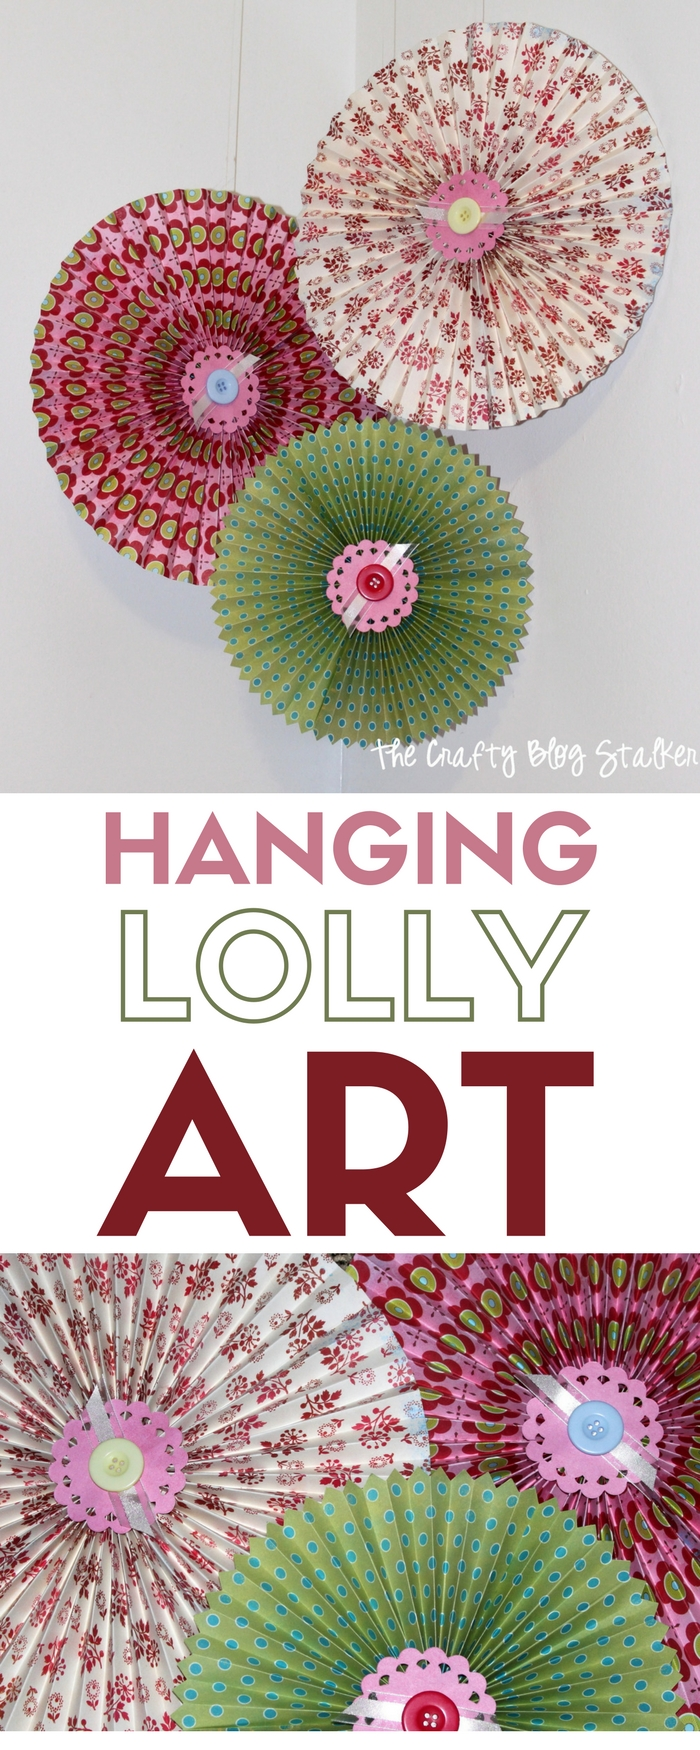 Hanging Lolly Art | Party Decor | HomeDecor | Paper Crafts | Patterned Paper | DIY